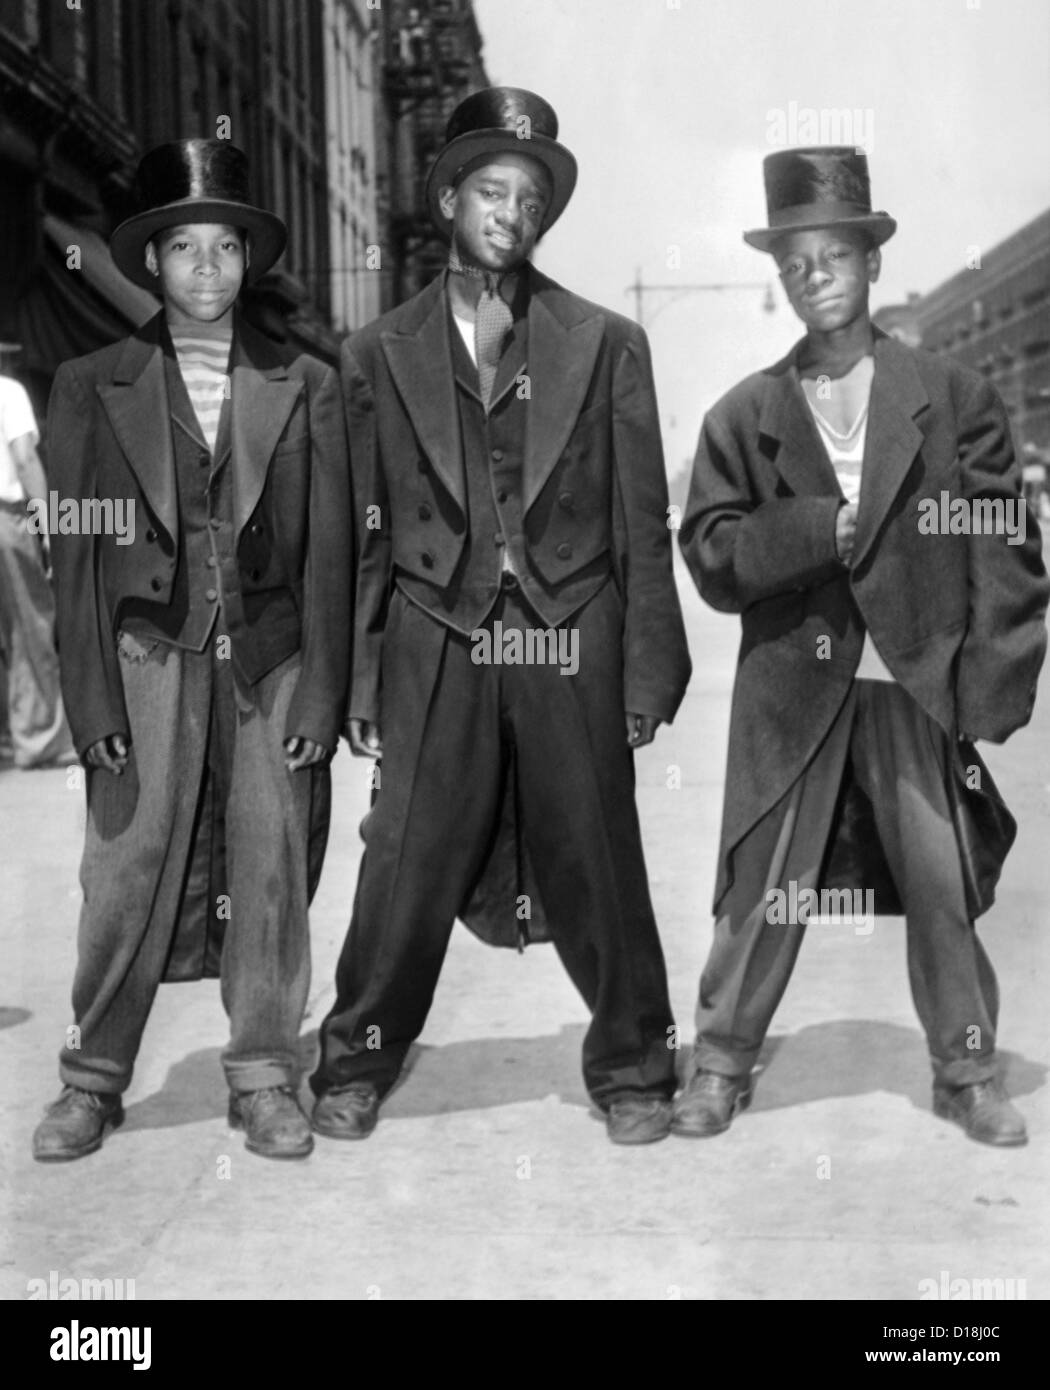 zoot suit riots ethnic and racial In the united states during world war ii and how the zoot suit riots both  of a  race riot, with anglo mobs of servicemen - unofficially sanctioned by local lapd.